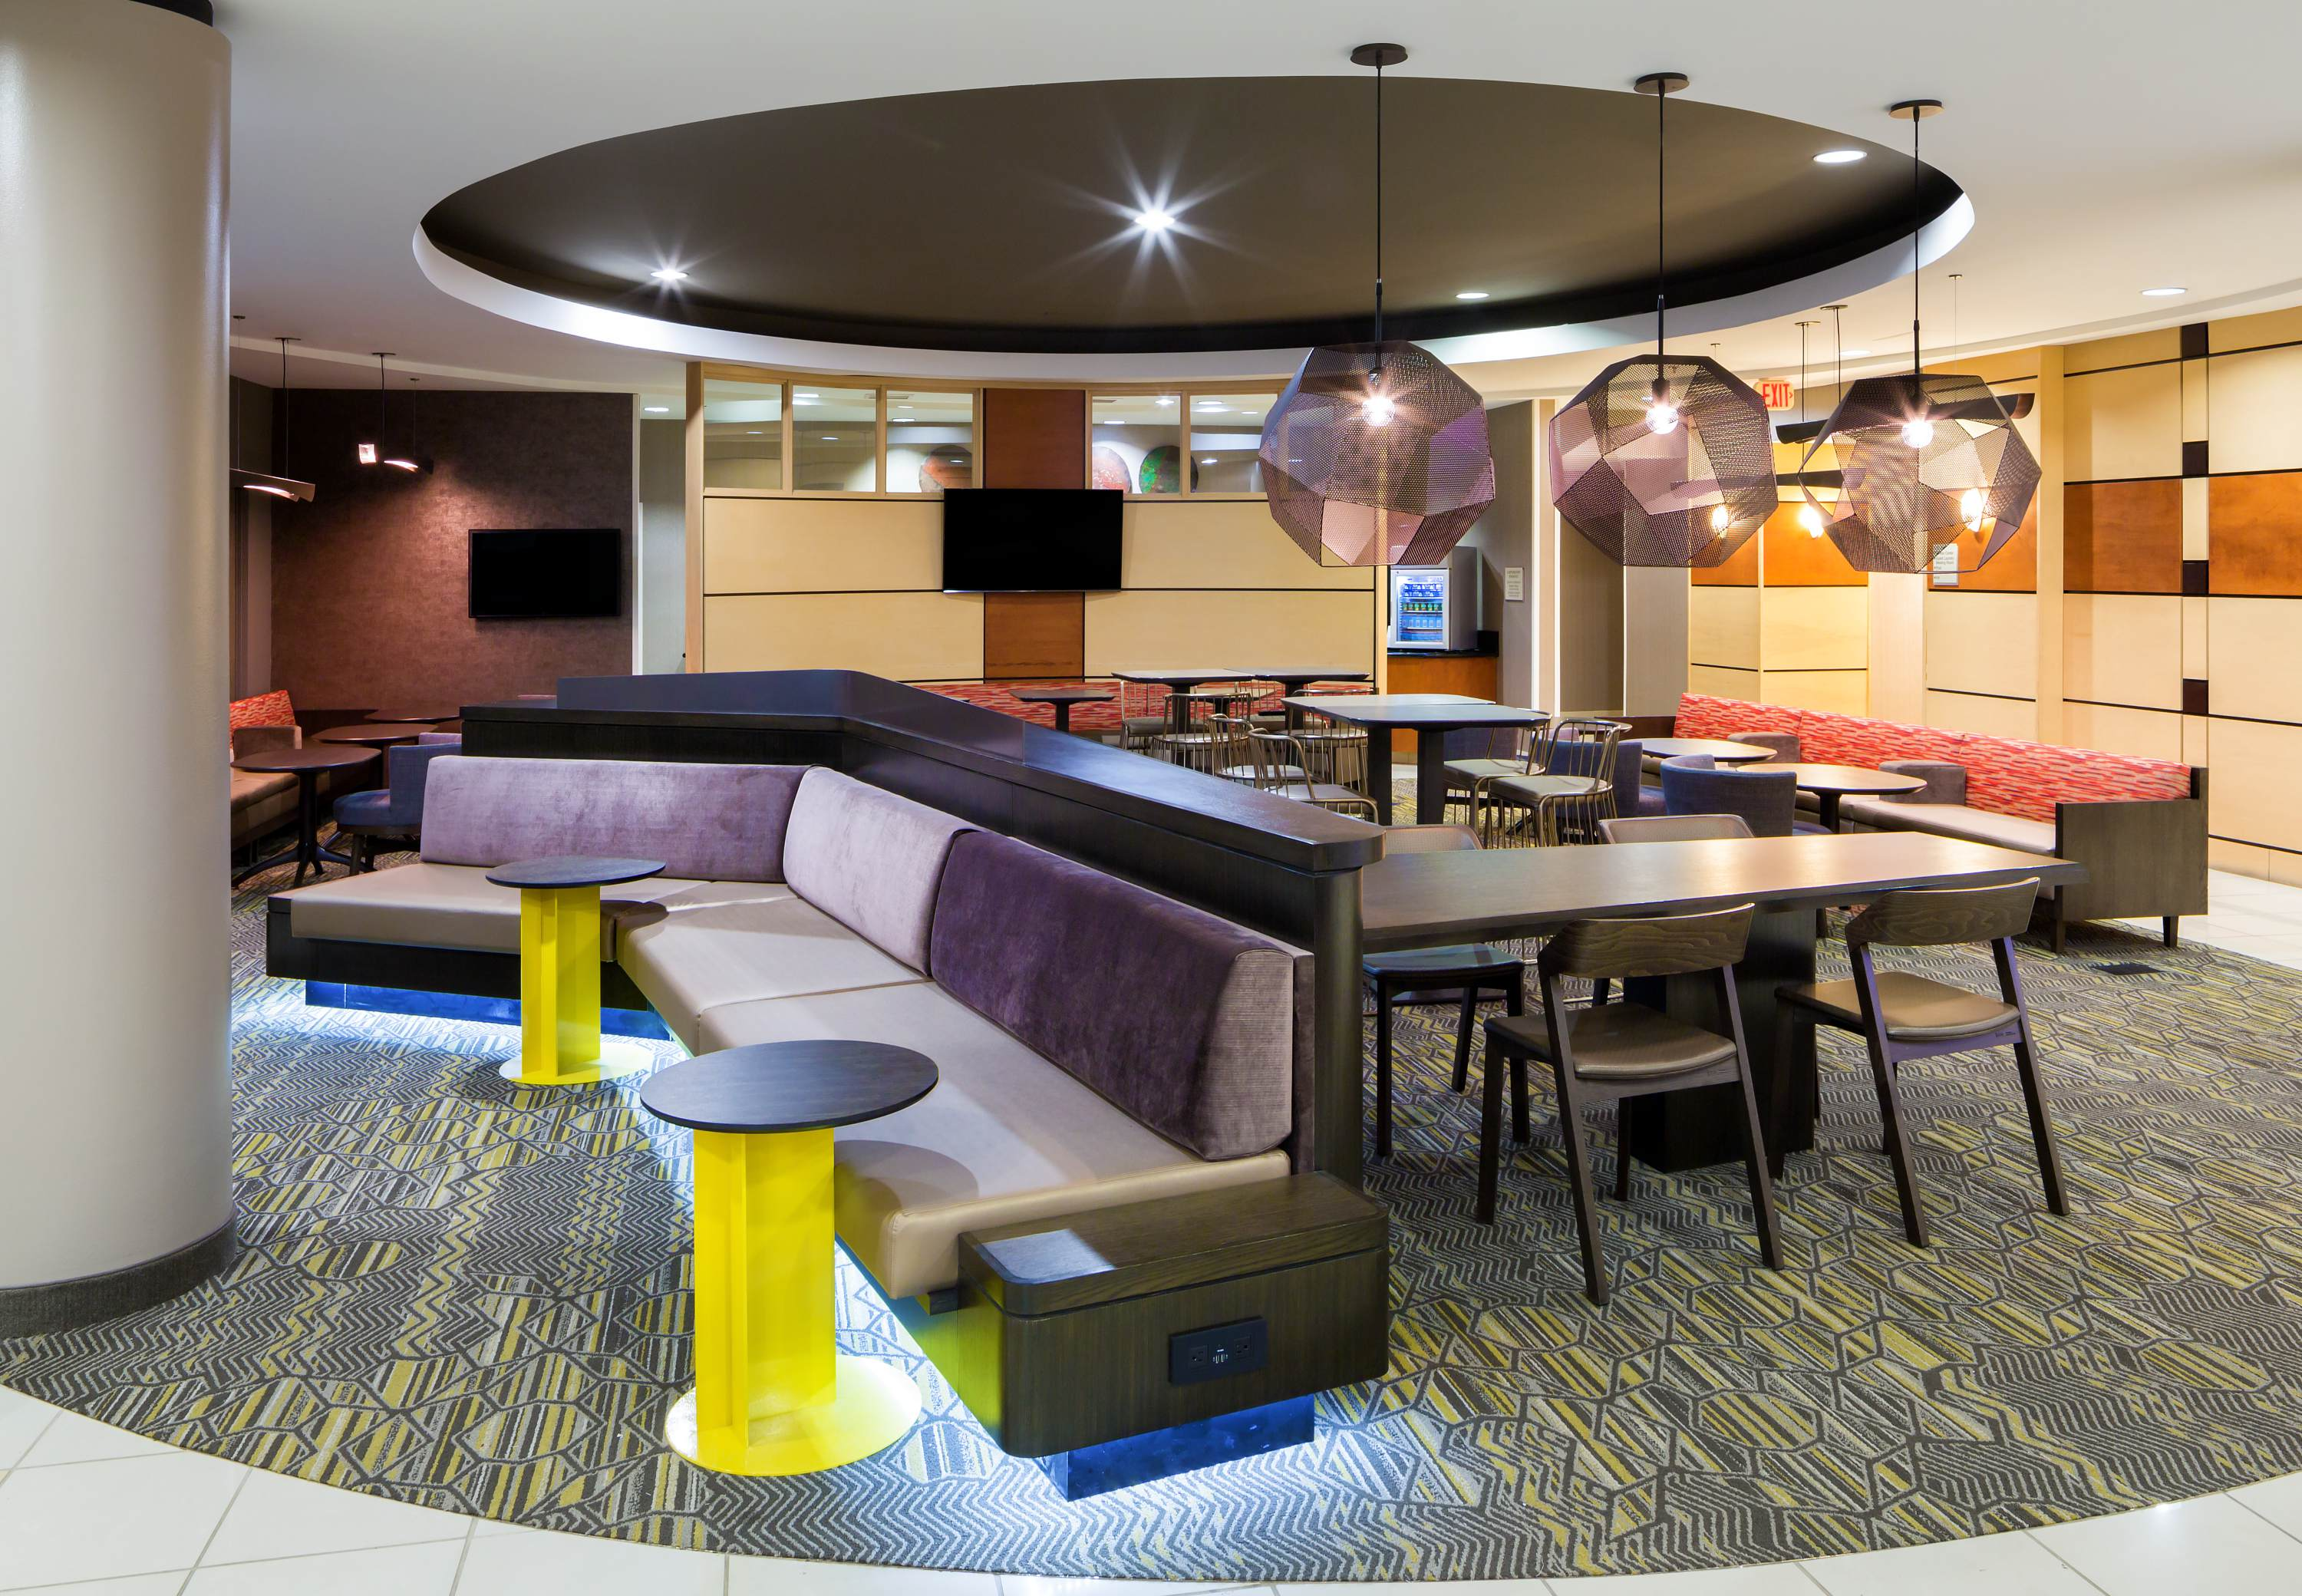 SpringHill Suites by Marriott Indianapolis Fishers image 21